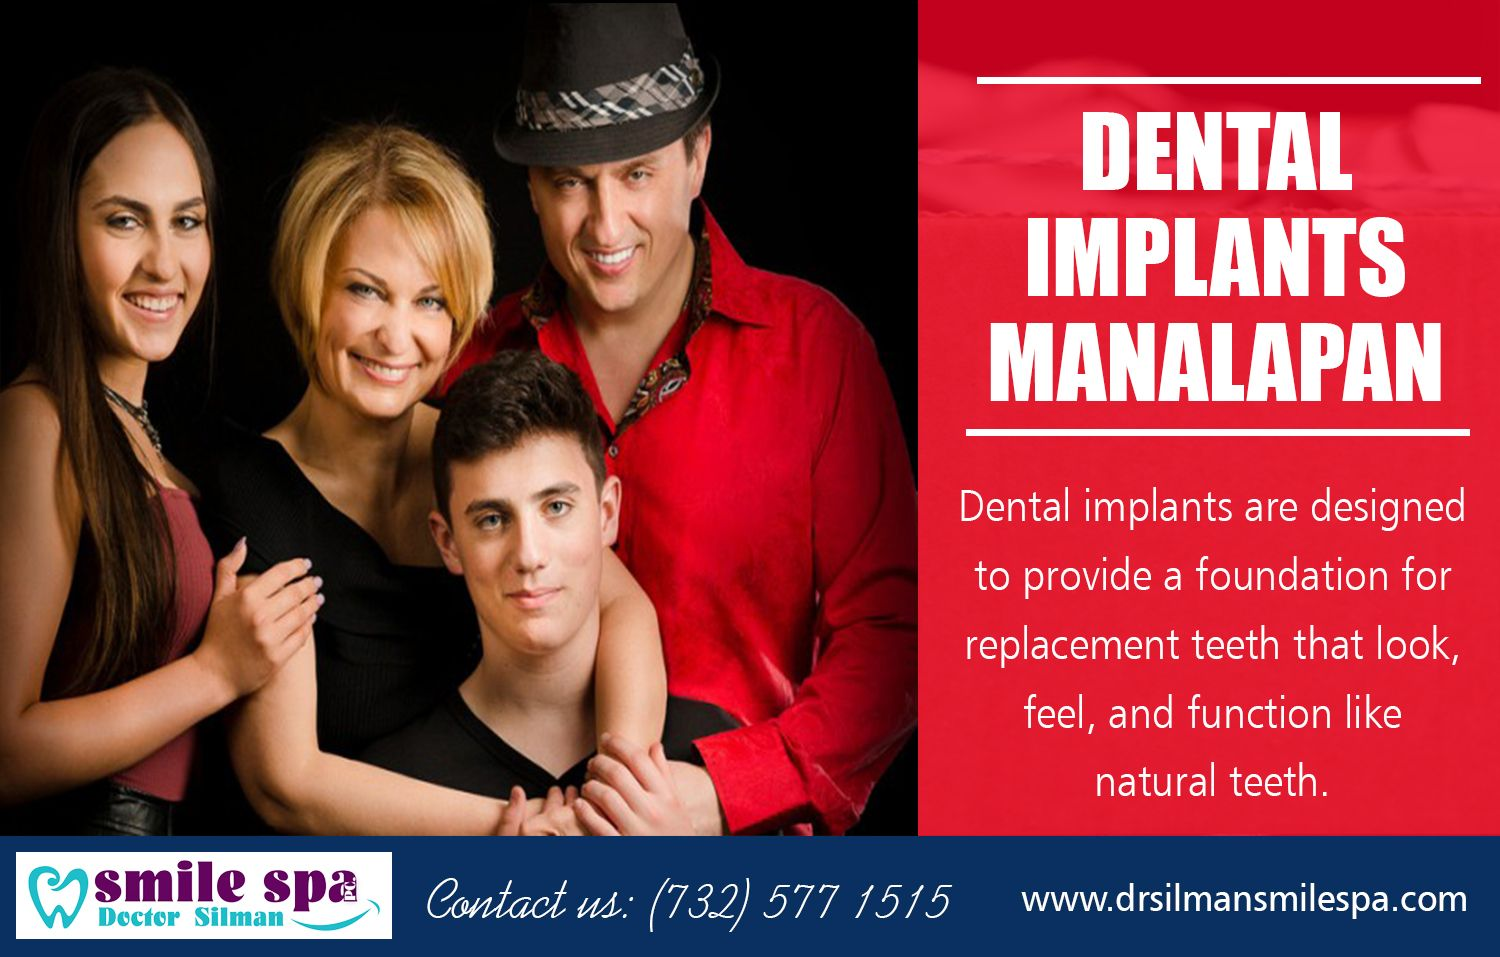 Contact alex silman dds and inna silman dds or manalapan